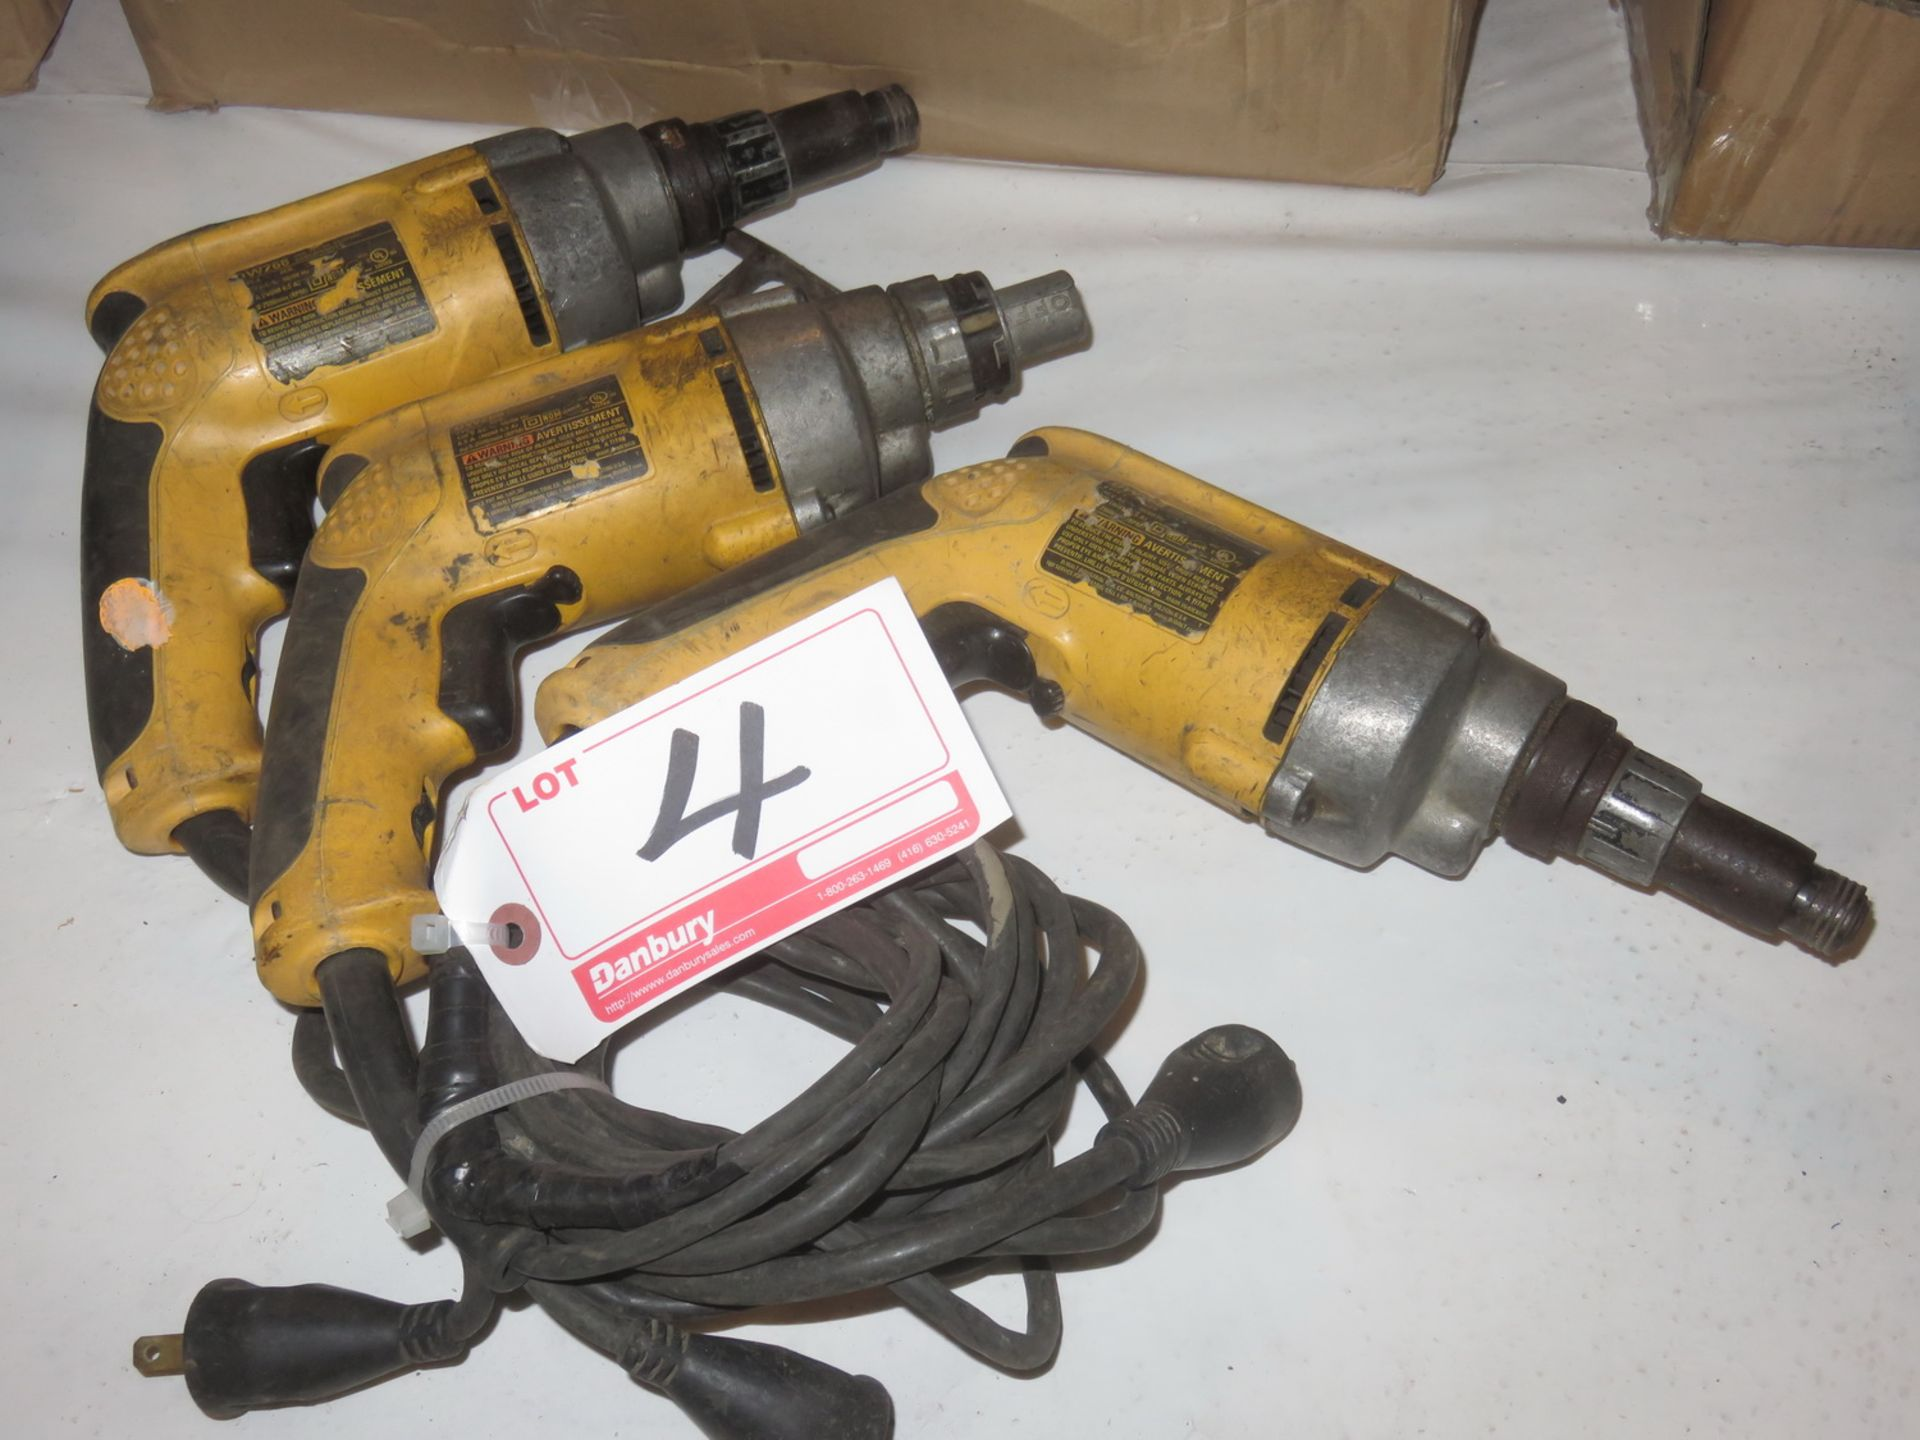 Lot 4 - LOT - DEWALT MOD DW268, DW266 ELECTRIC SCREW GUNS ETC.